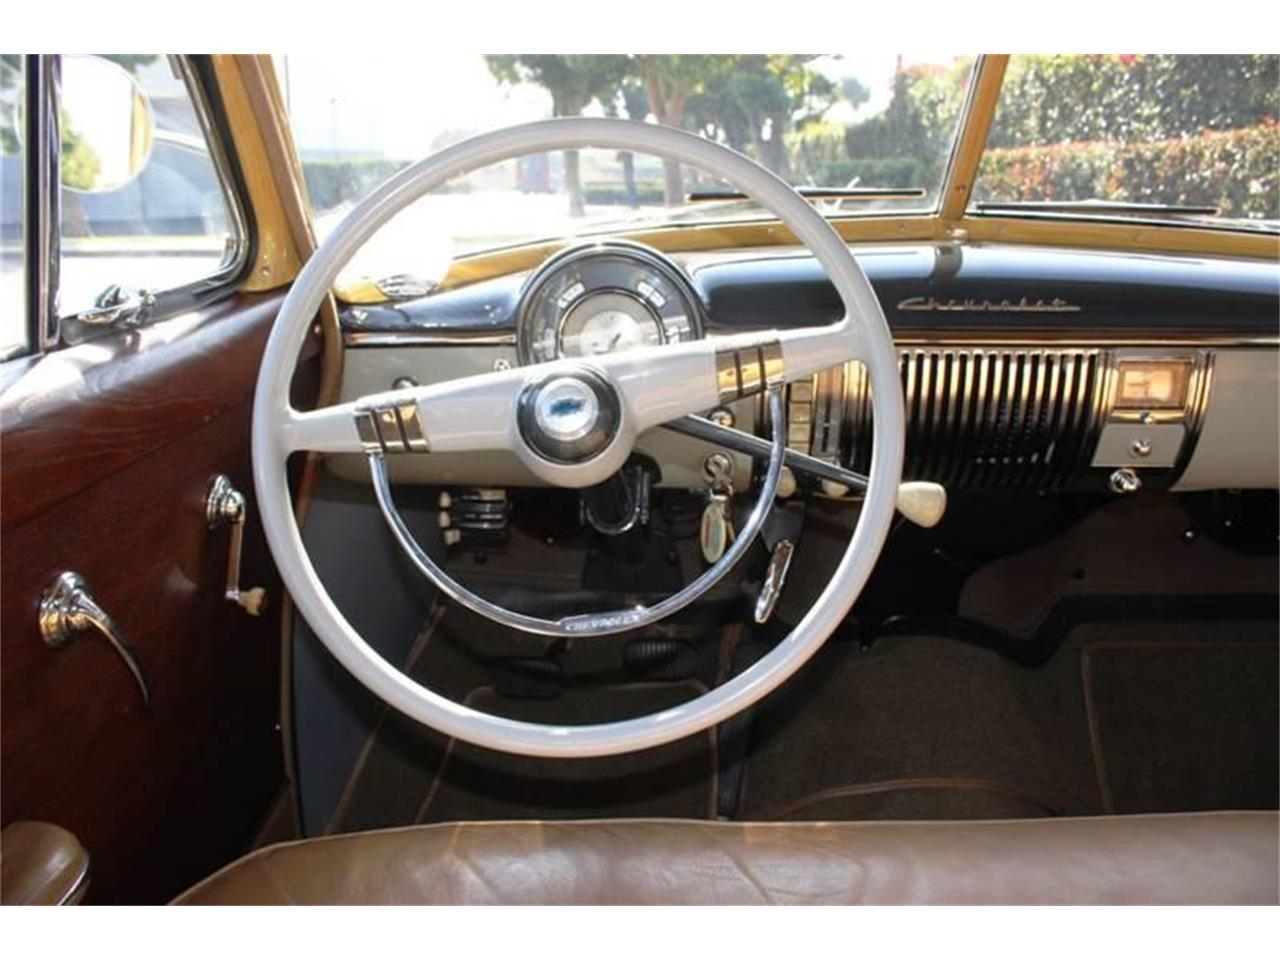 1950 Chevrolet Styleline Deluxe for sale in La Verne, CA – photo 42